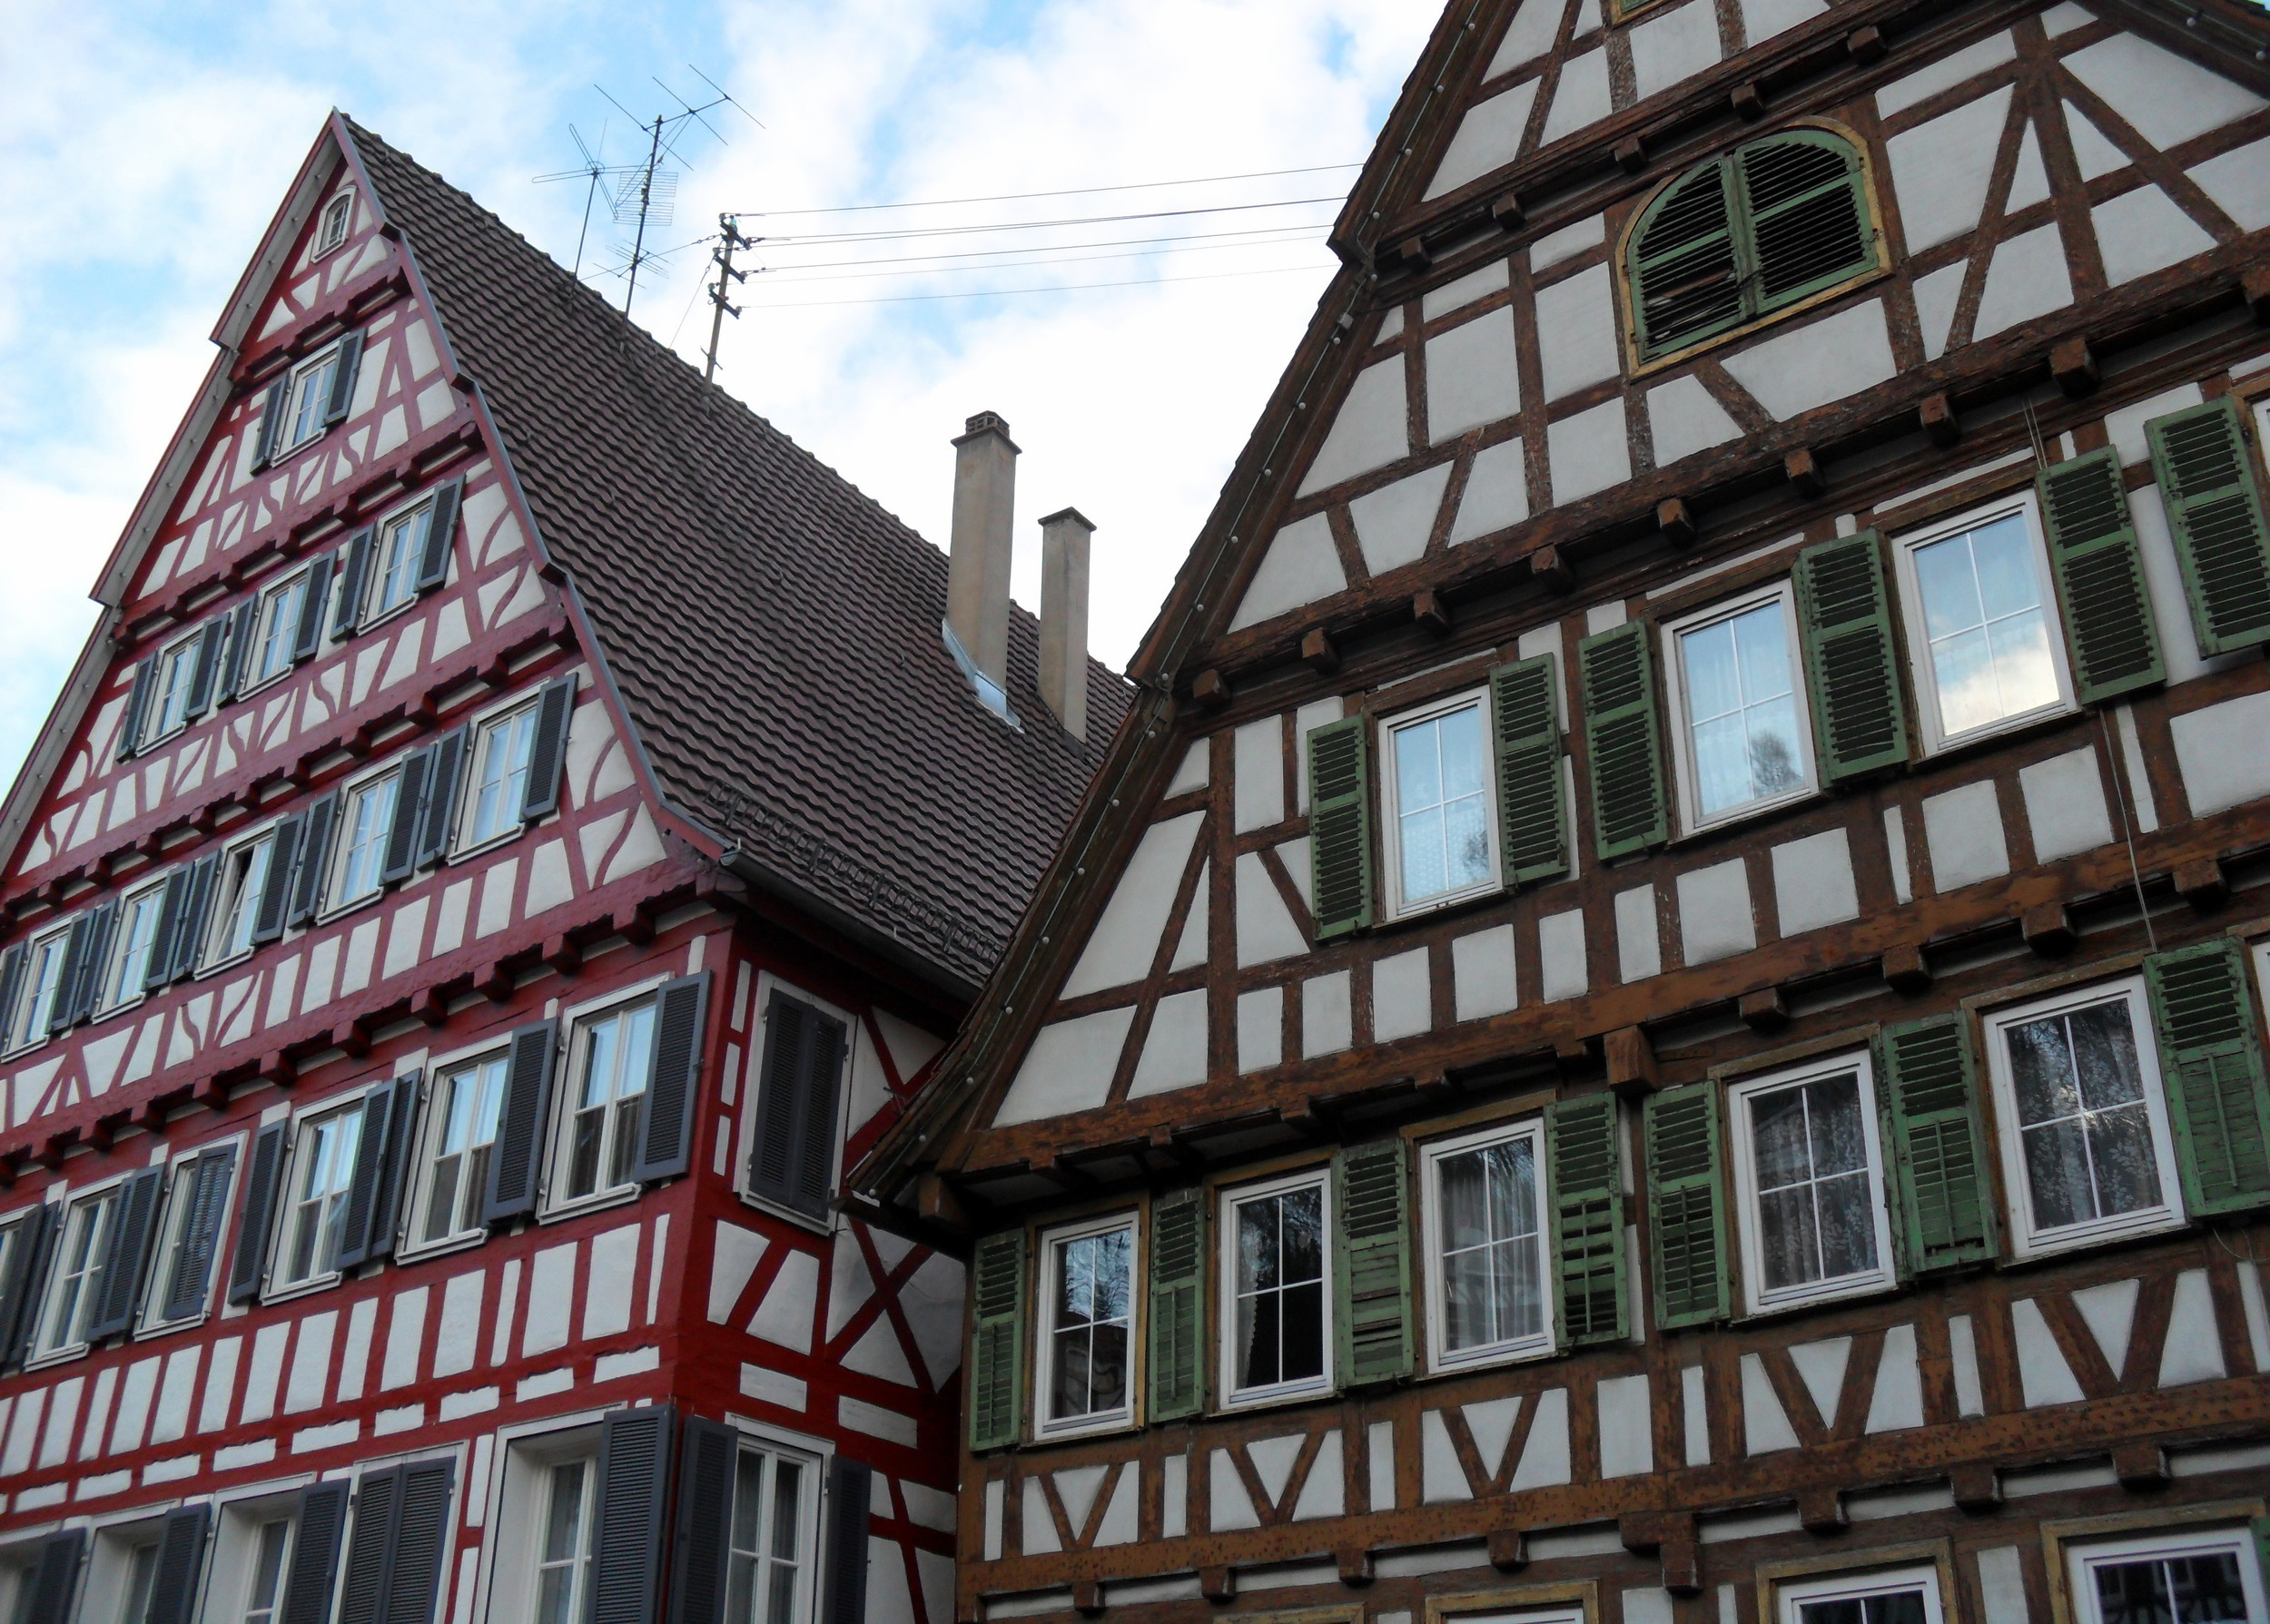 Oh look,  another  fachwerk house...